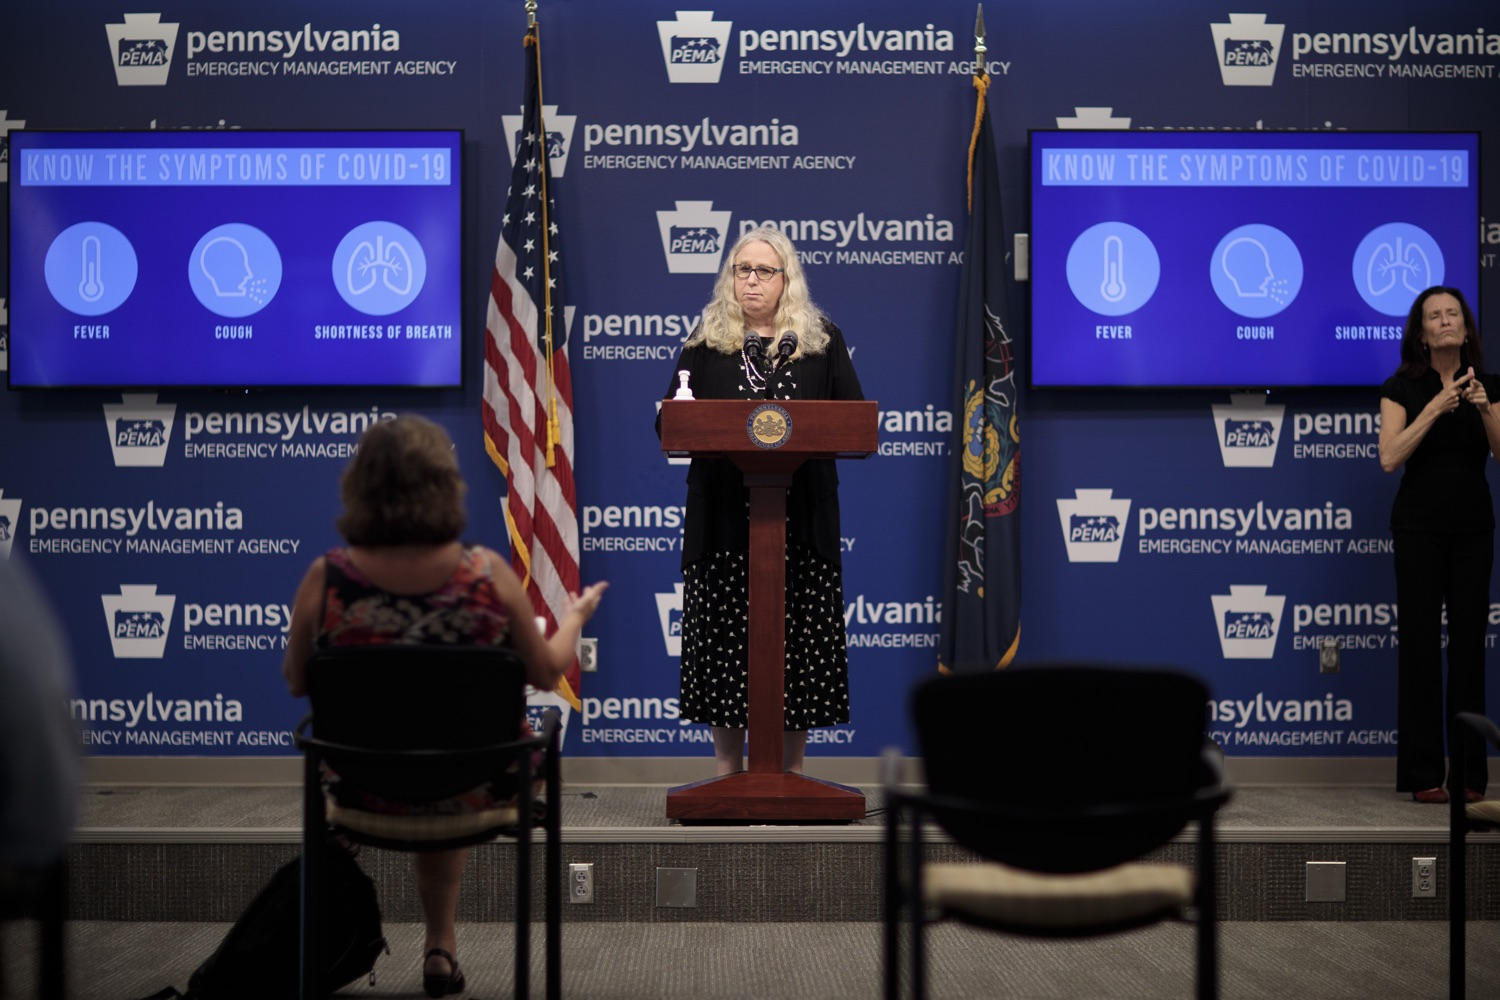 "<a href=""https://filesource.wostreaming.net/commonwealthofpa/photo/18258_doh_covidUpdate_dz_003.jpg"" target=""_blank"">⇣ Download Photo<br></a>Pennsylvania Secretary of Health Dr. Rachel Levine speaking to the press.  The Pennsylvania Department of Health today confirmed as of 12:00 a.m., September 14, that there were 638 additional positive cases of COVID-19 on September 13 and 620 additional positive cases of COVID-19 on September 14, bringing the statewide total to 145,063. All 67 counties in Pennsylvania have cases of COVID-19.  SEPTEMBER 14, 2020 - HARRISBURG, PA"